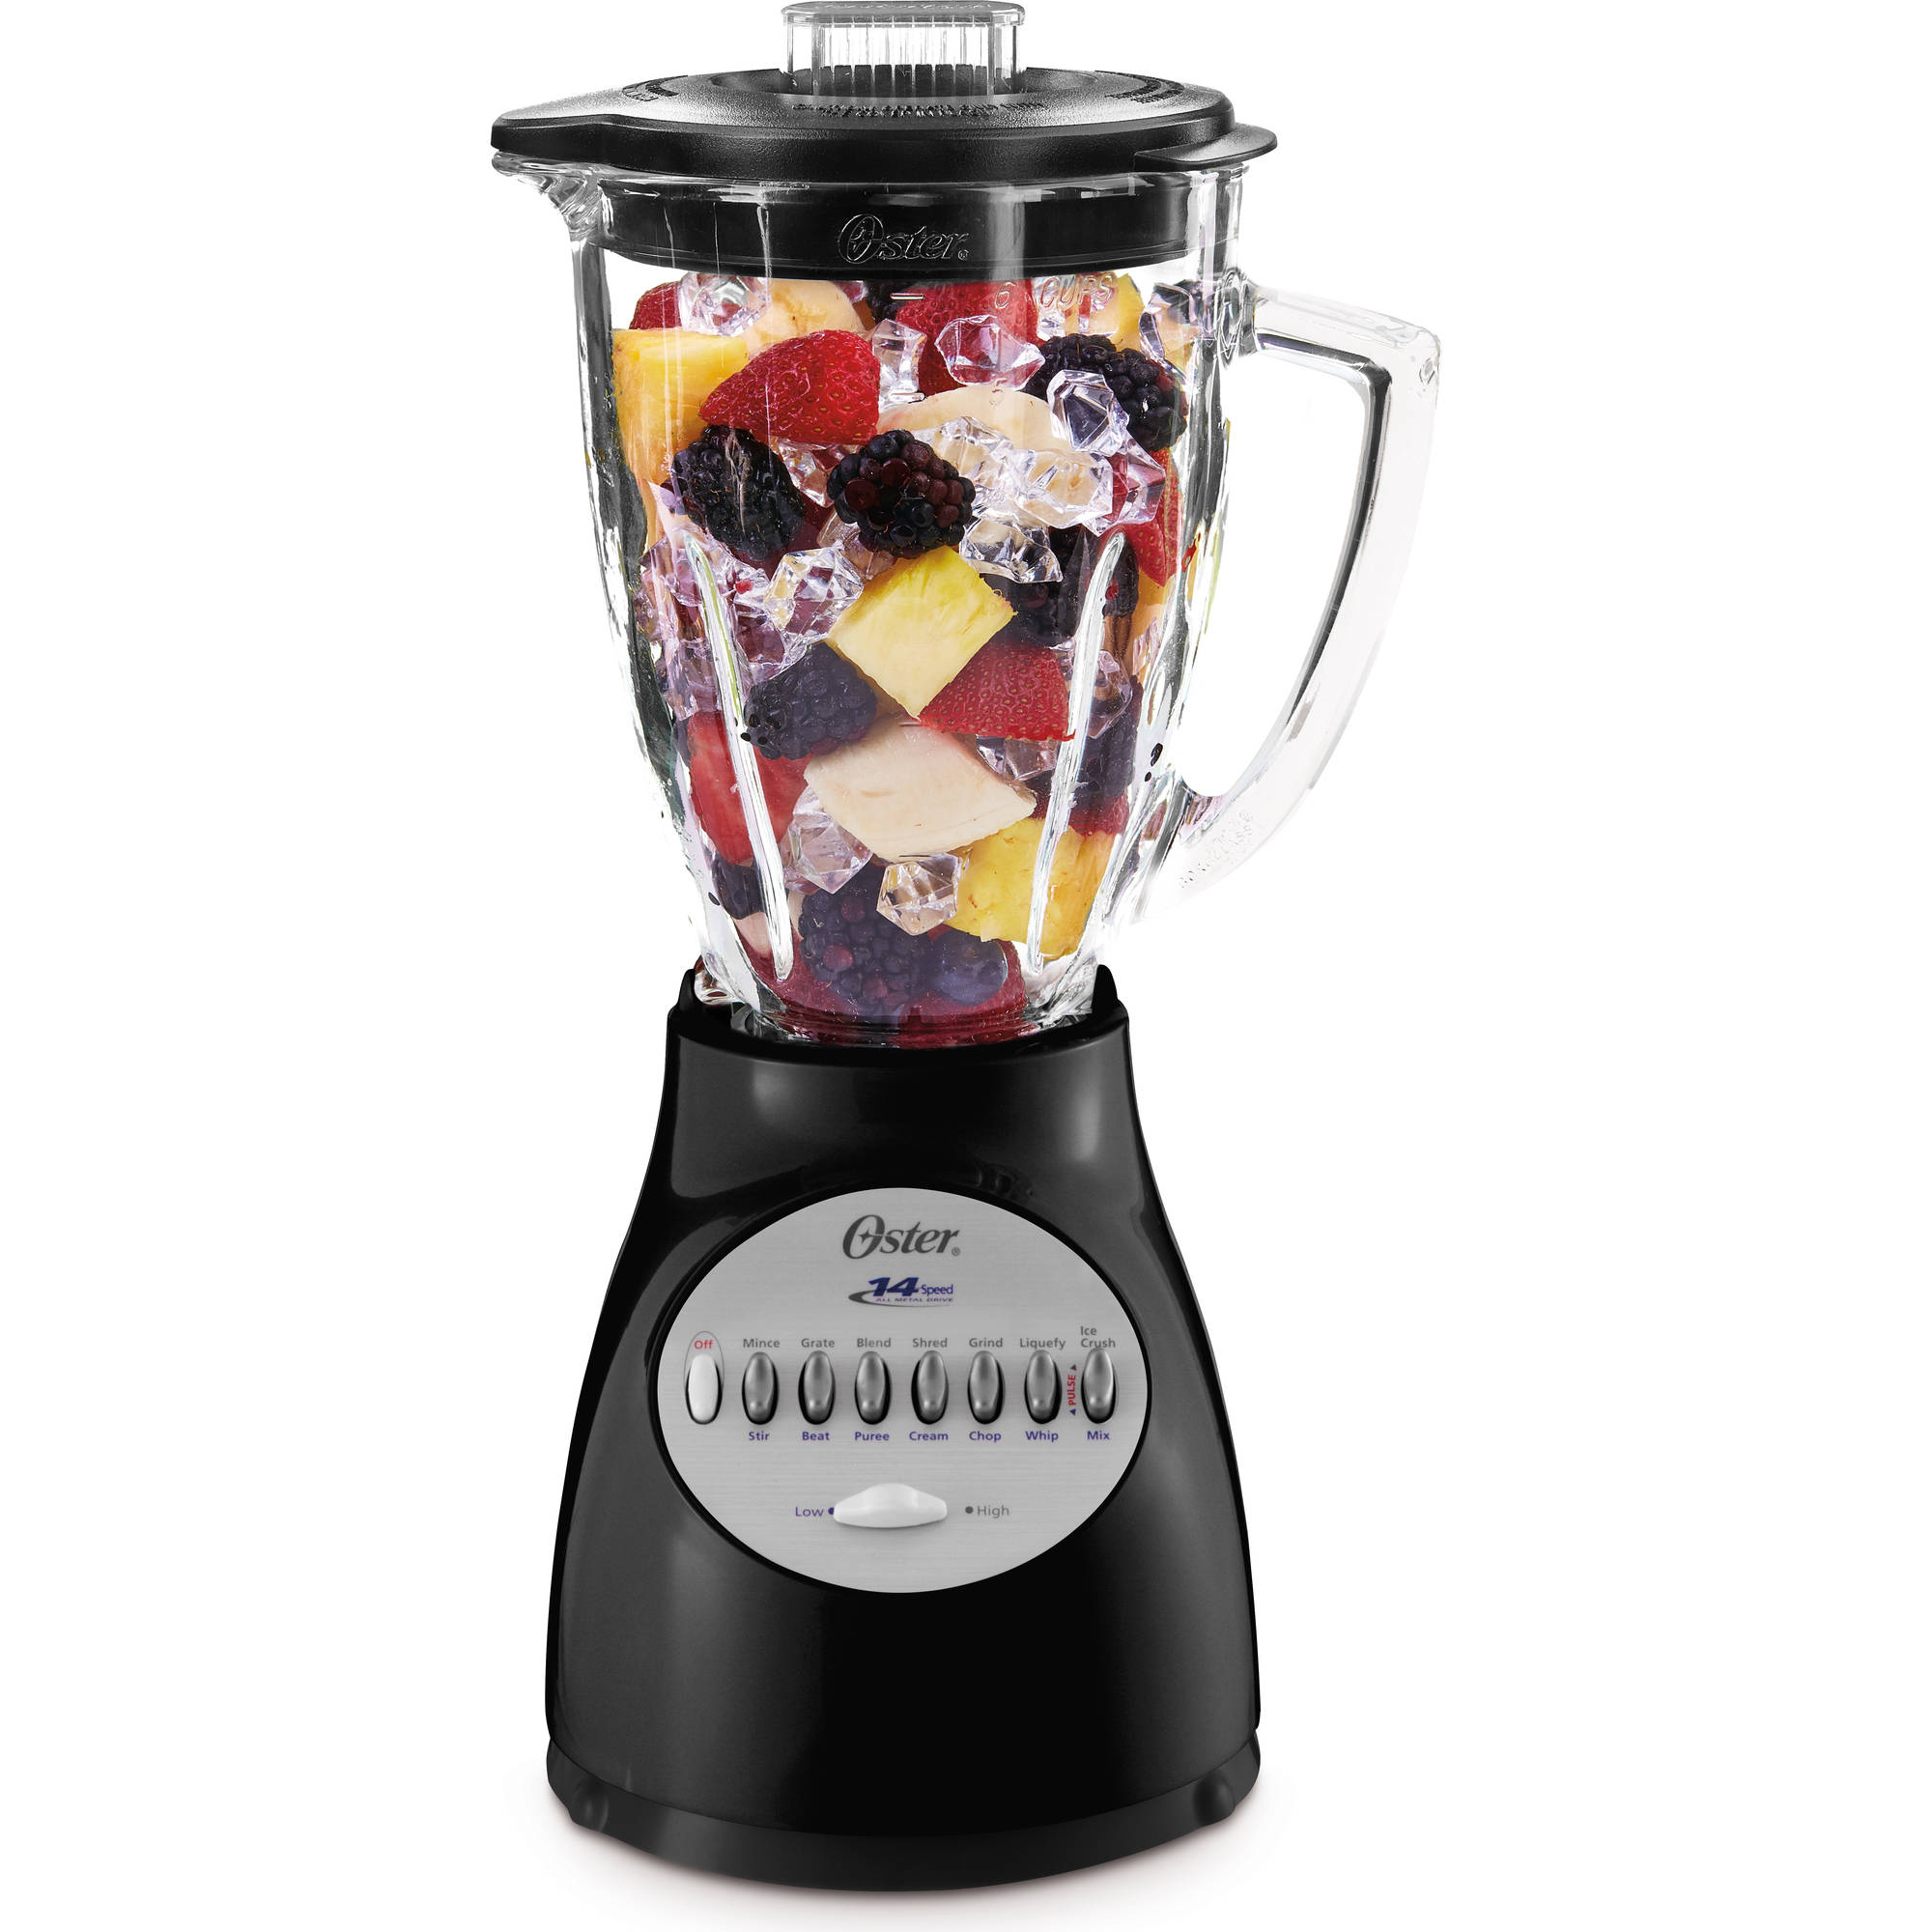 oster 14 speed accurate blend 200 blender 6 cup pitcher glass blade smoothie new ebay. Black Bedroom Furniture Sets. Home Design Ideas